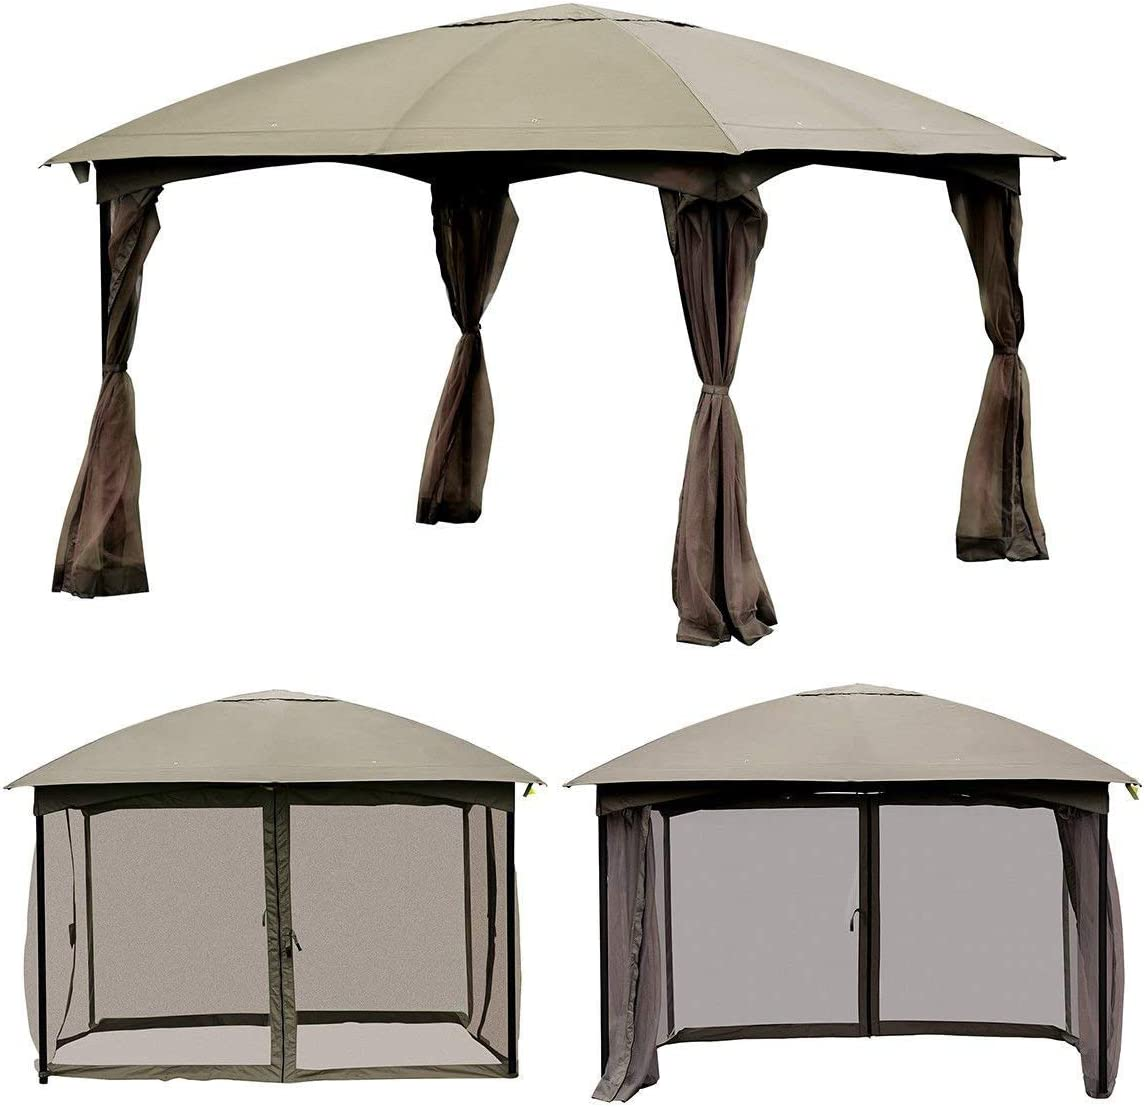 Tangkula Outdoor Gazebo 11.5 x 11.5 , Fully Enclosed Canopy Gazebo Tent with Removable 4 Walls, Suitable for Patio Garden Lawn Beach, with 133 Square Feet of Shade